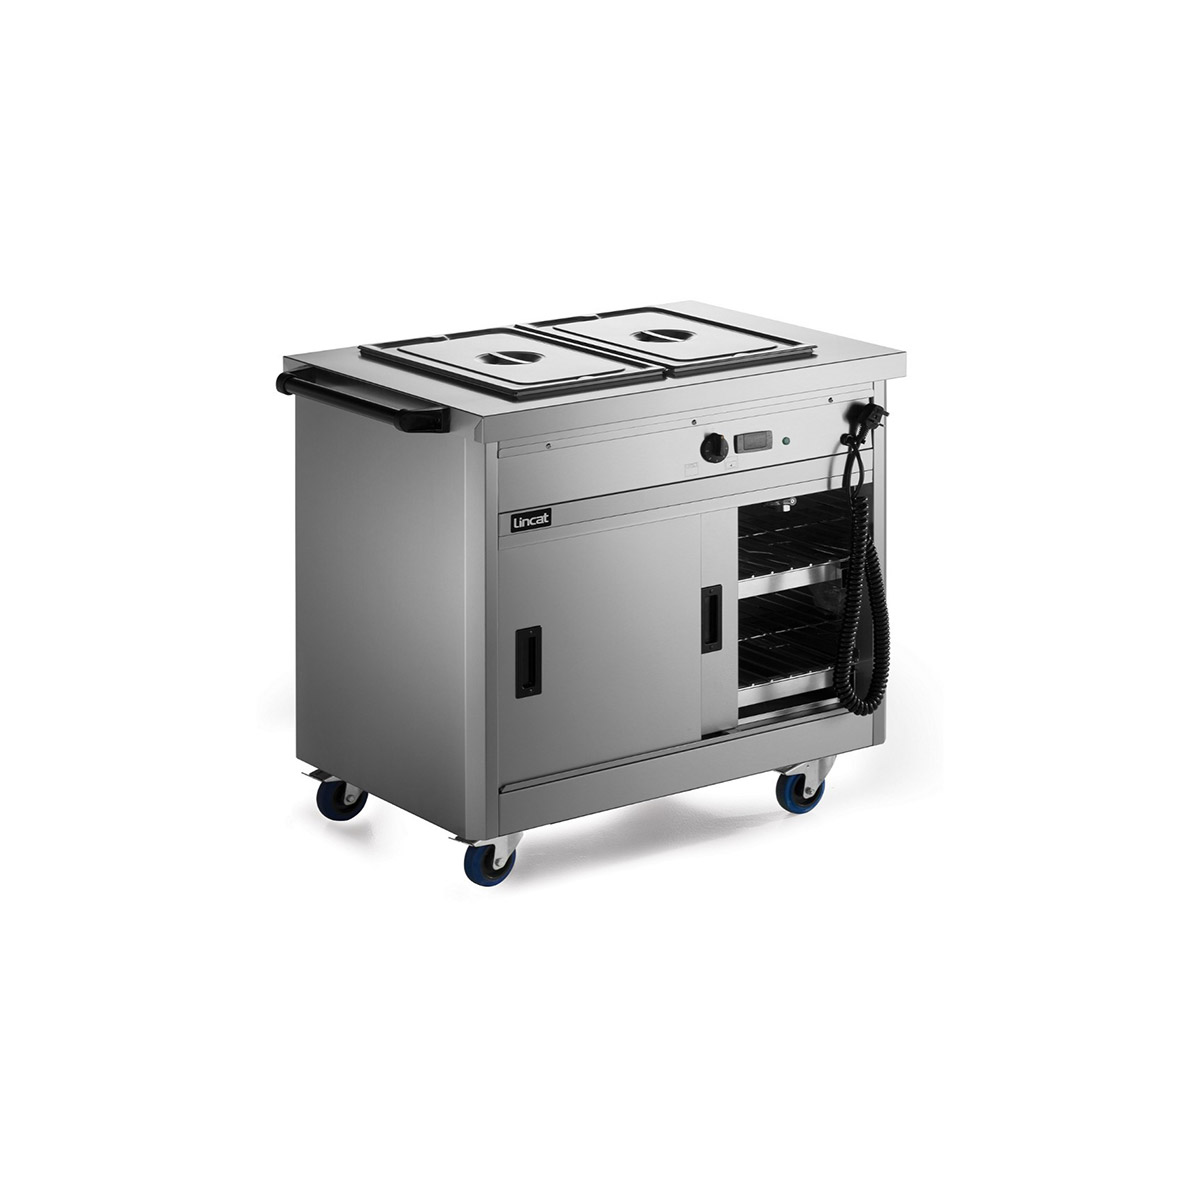 P6B2 - Lincat Panther 670 Series Free-standing Hot Cupboard - Bain Marie Top - 2GN - W 980 mm - 2.6 kW